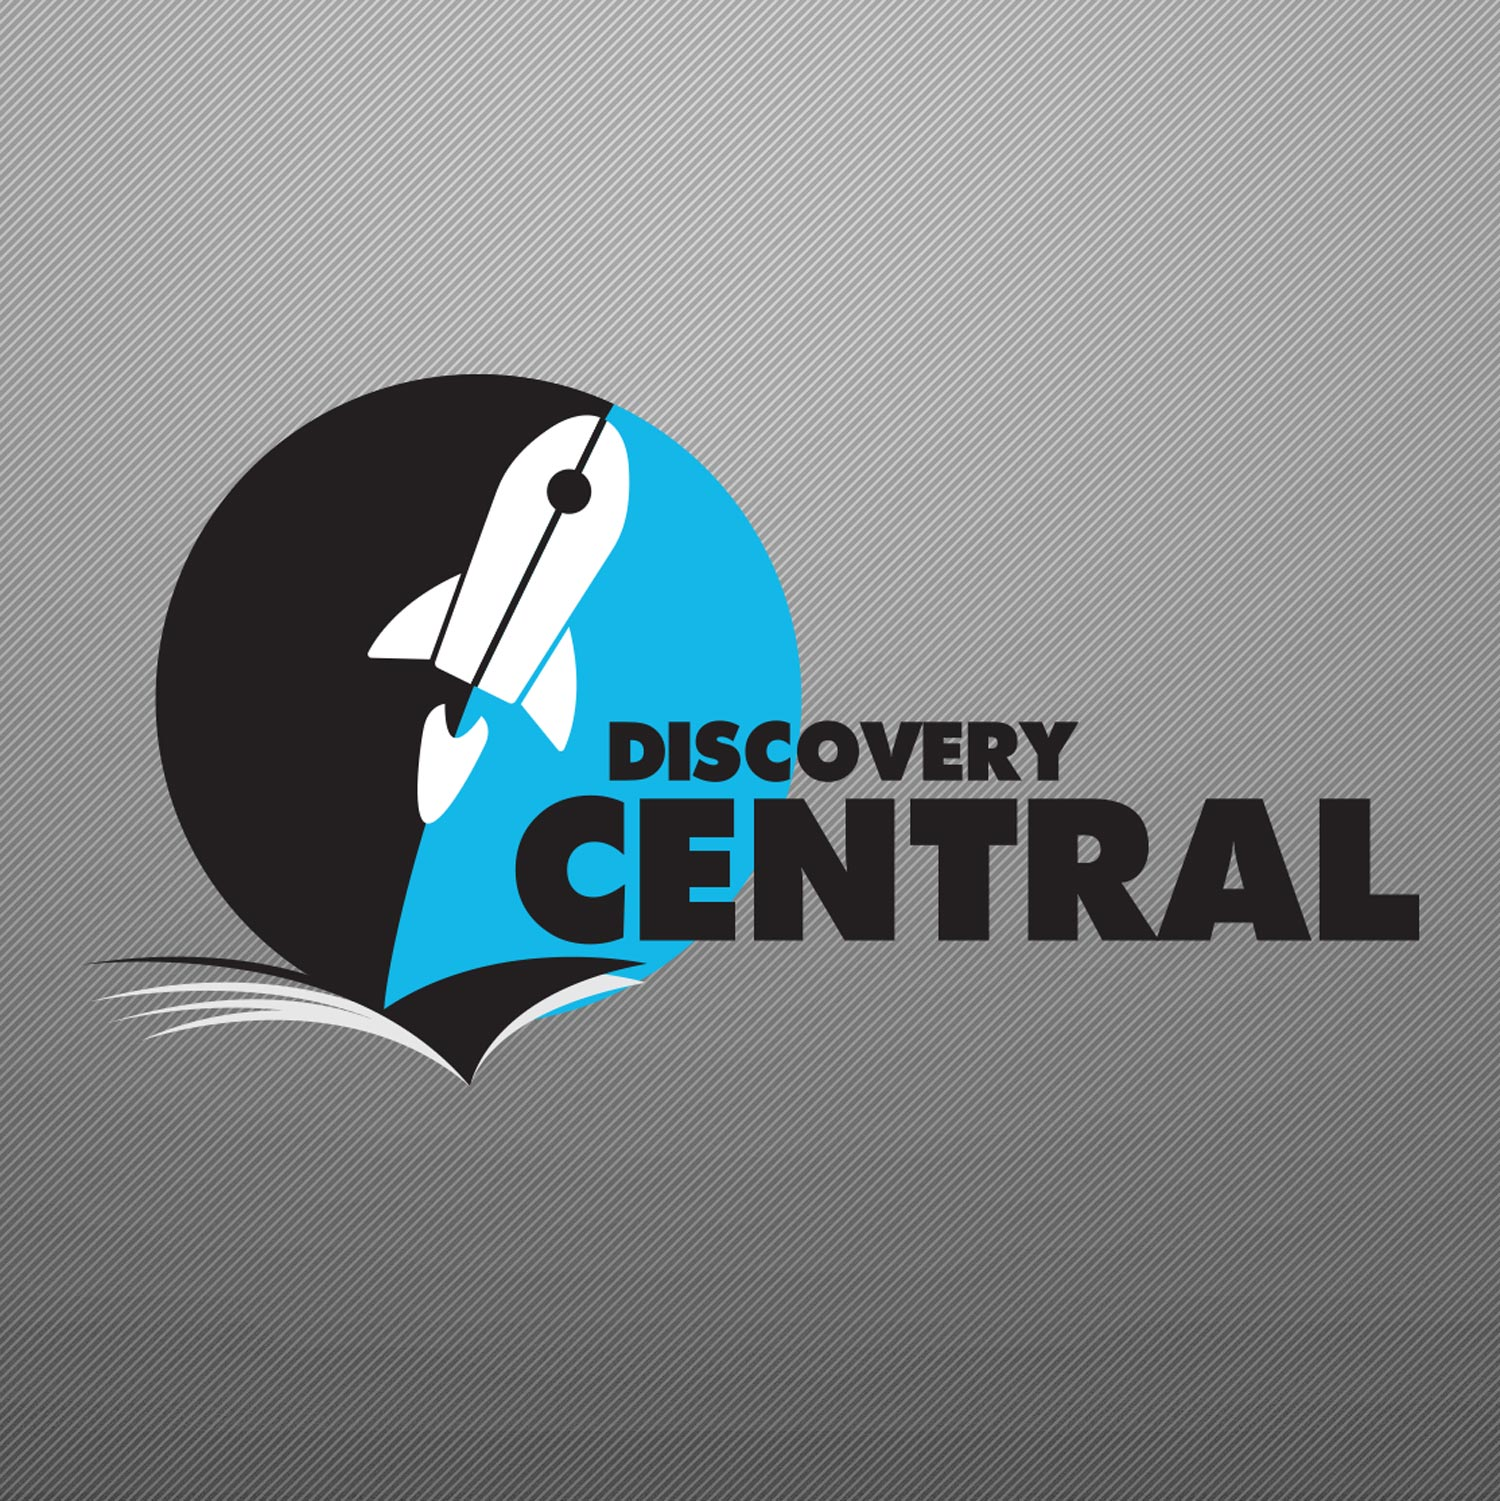 Elementary Ministry - Discover Central - Grace Community Church